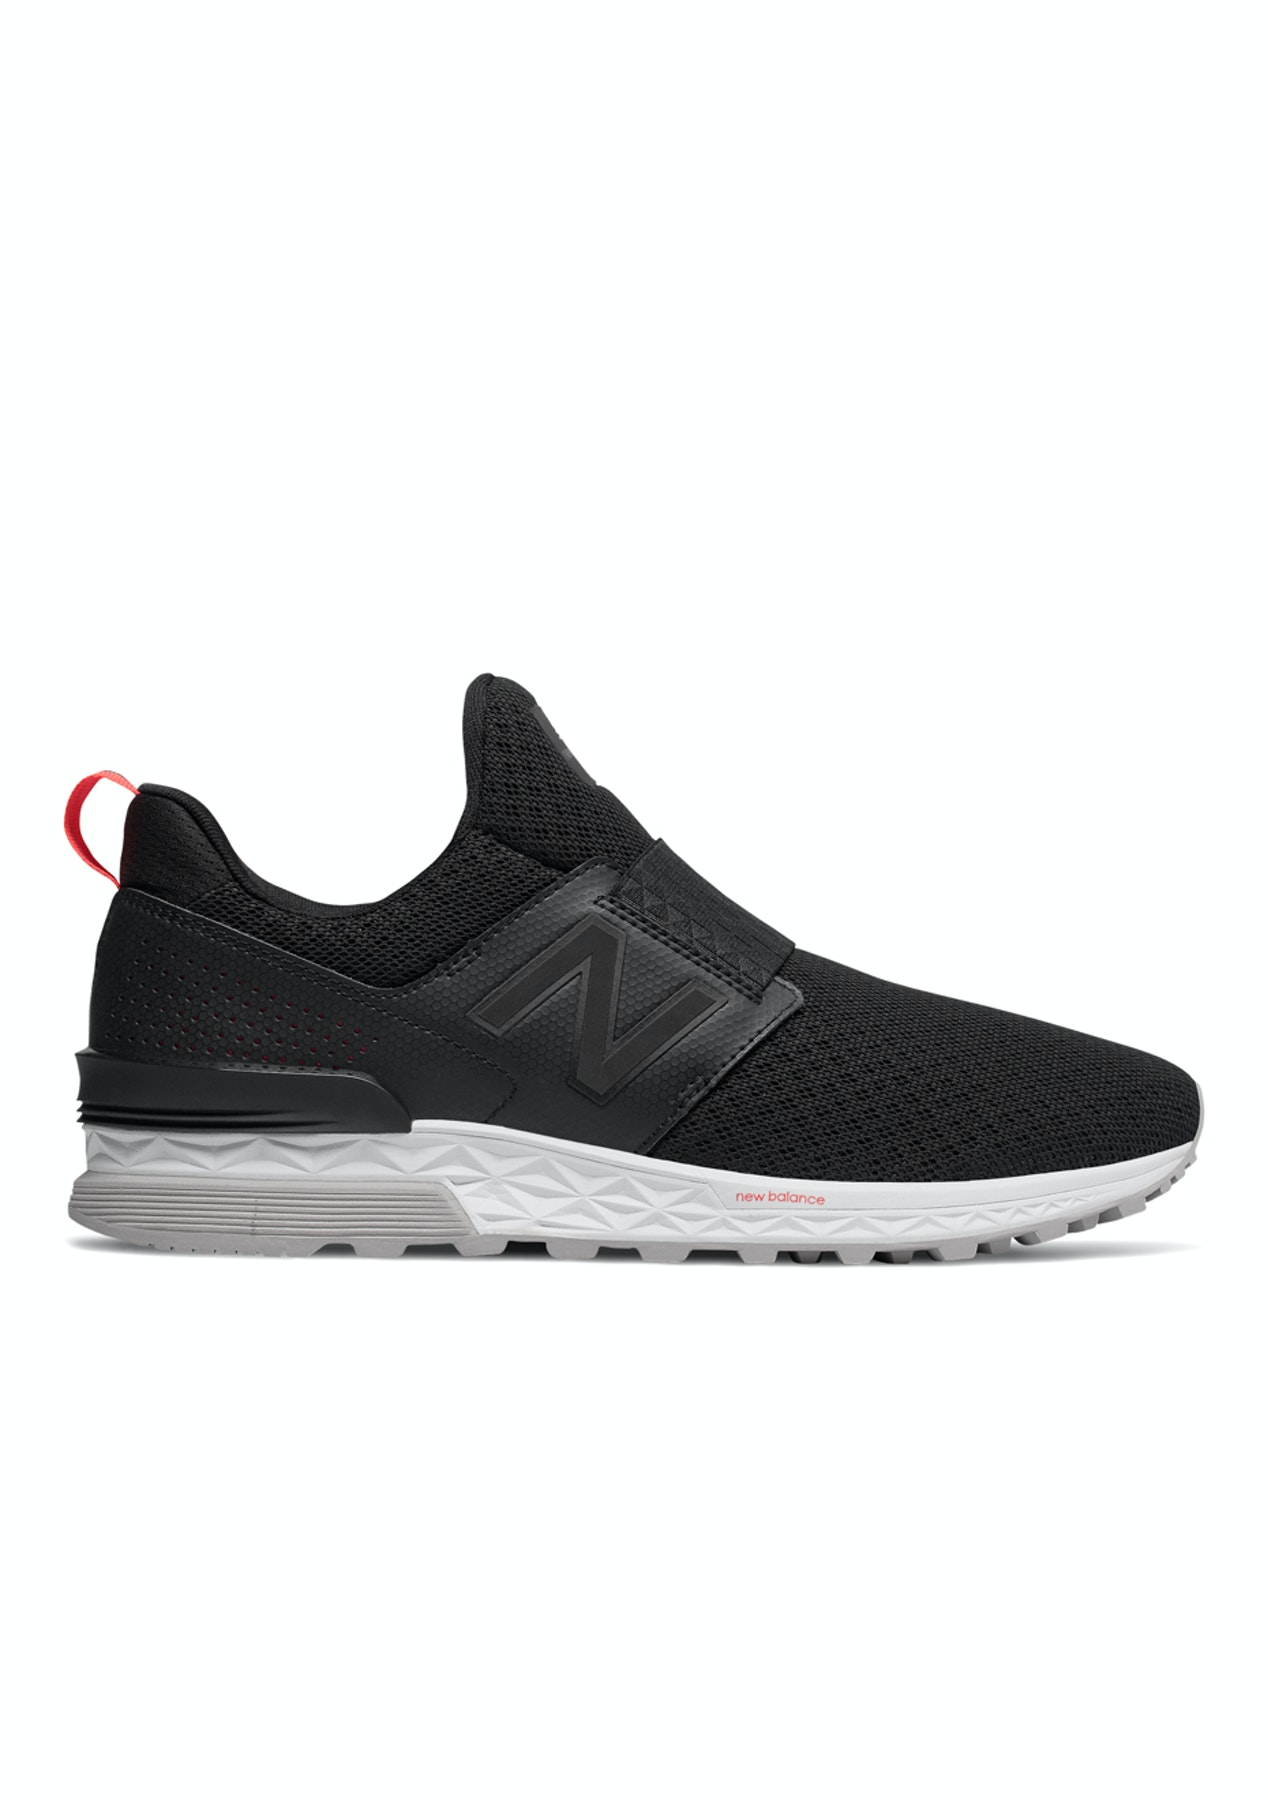 New Balance Mens - Slip On 574 Sport Decon - Black with Silver - Boxing Day New  Balance - Onceit 44a06ce0d